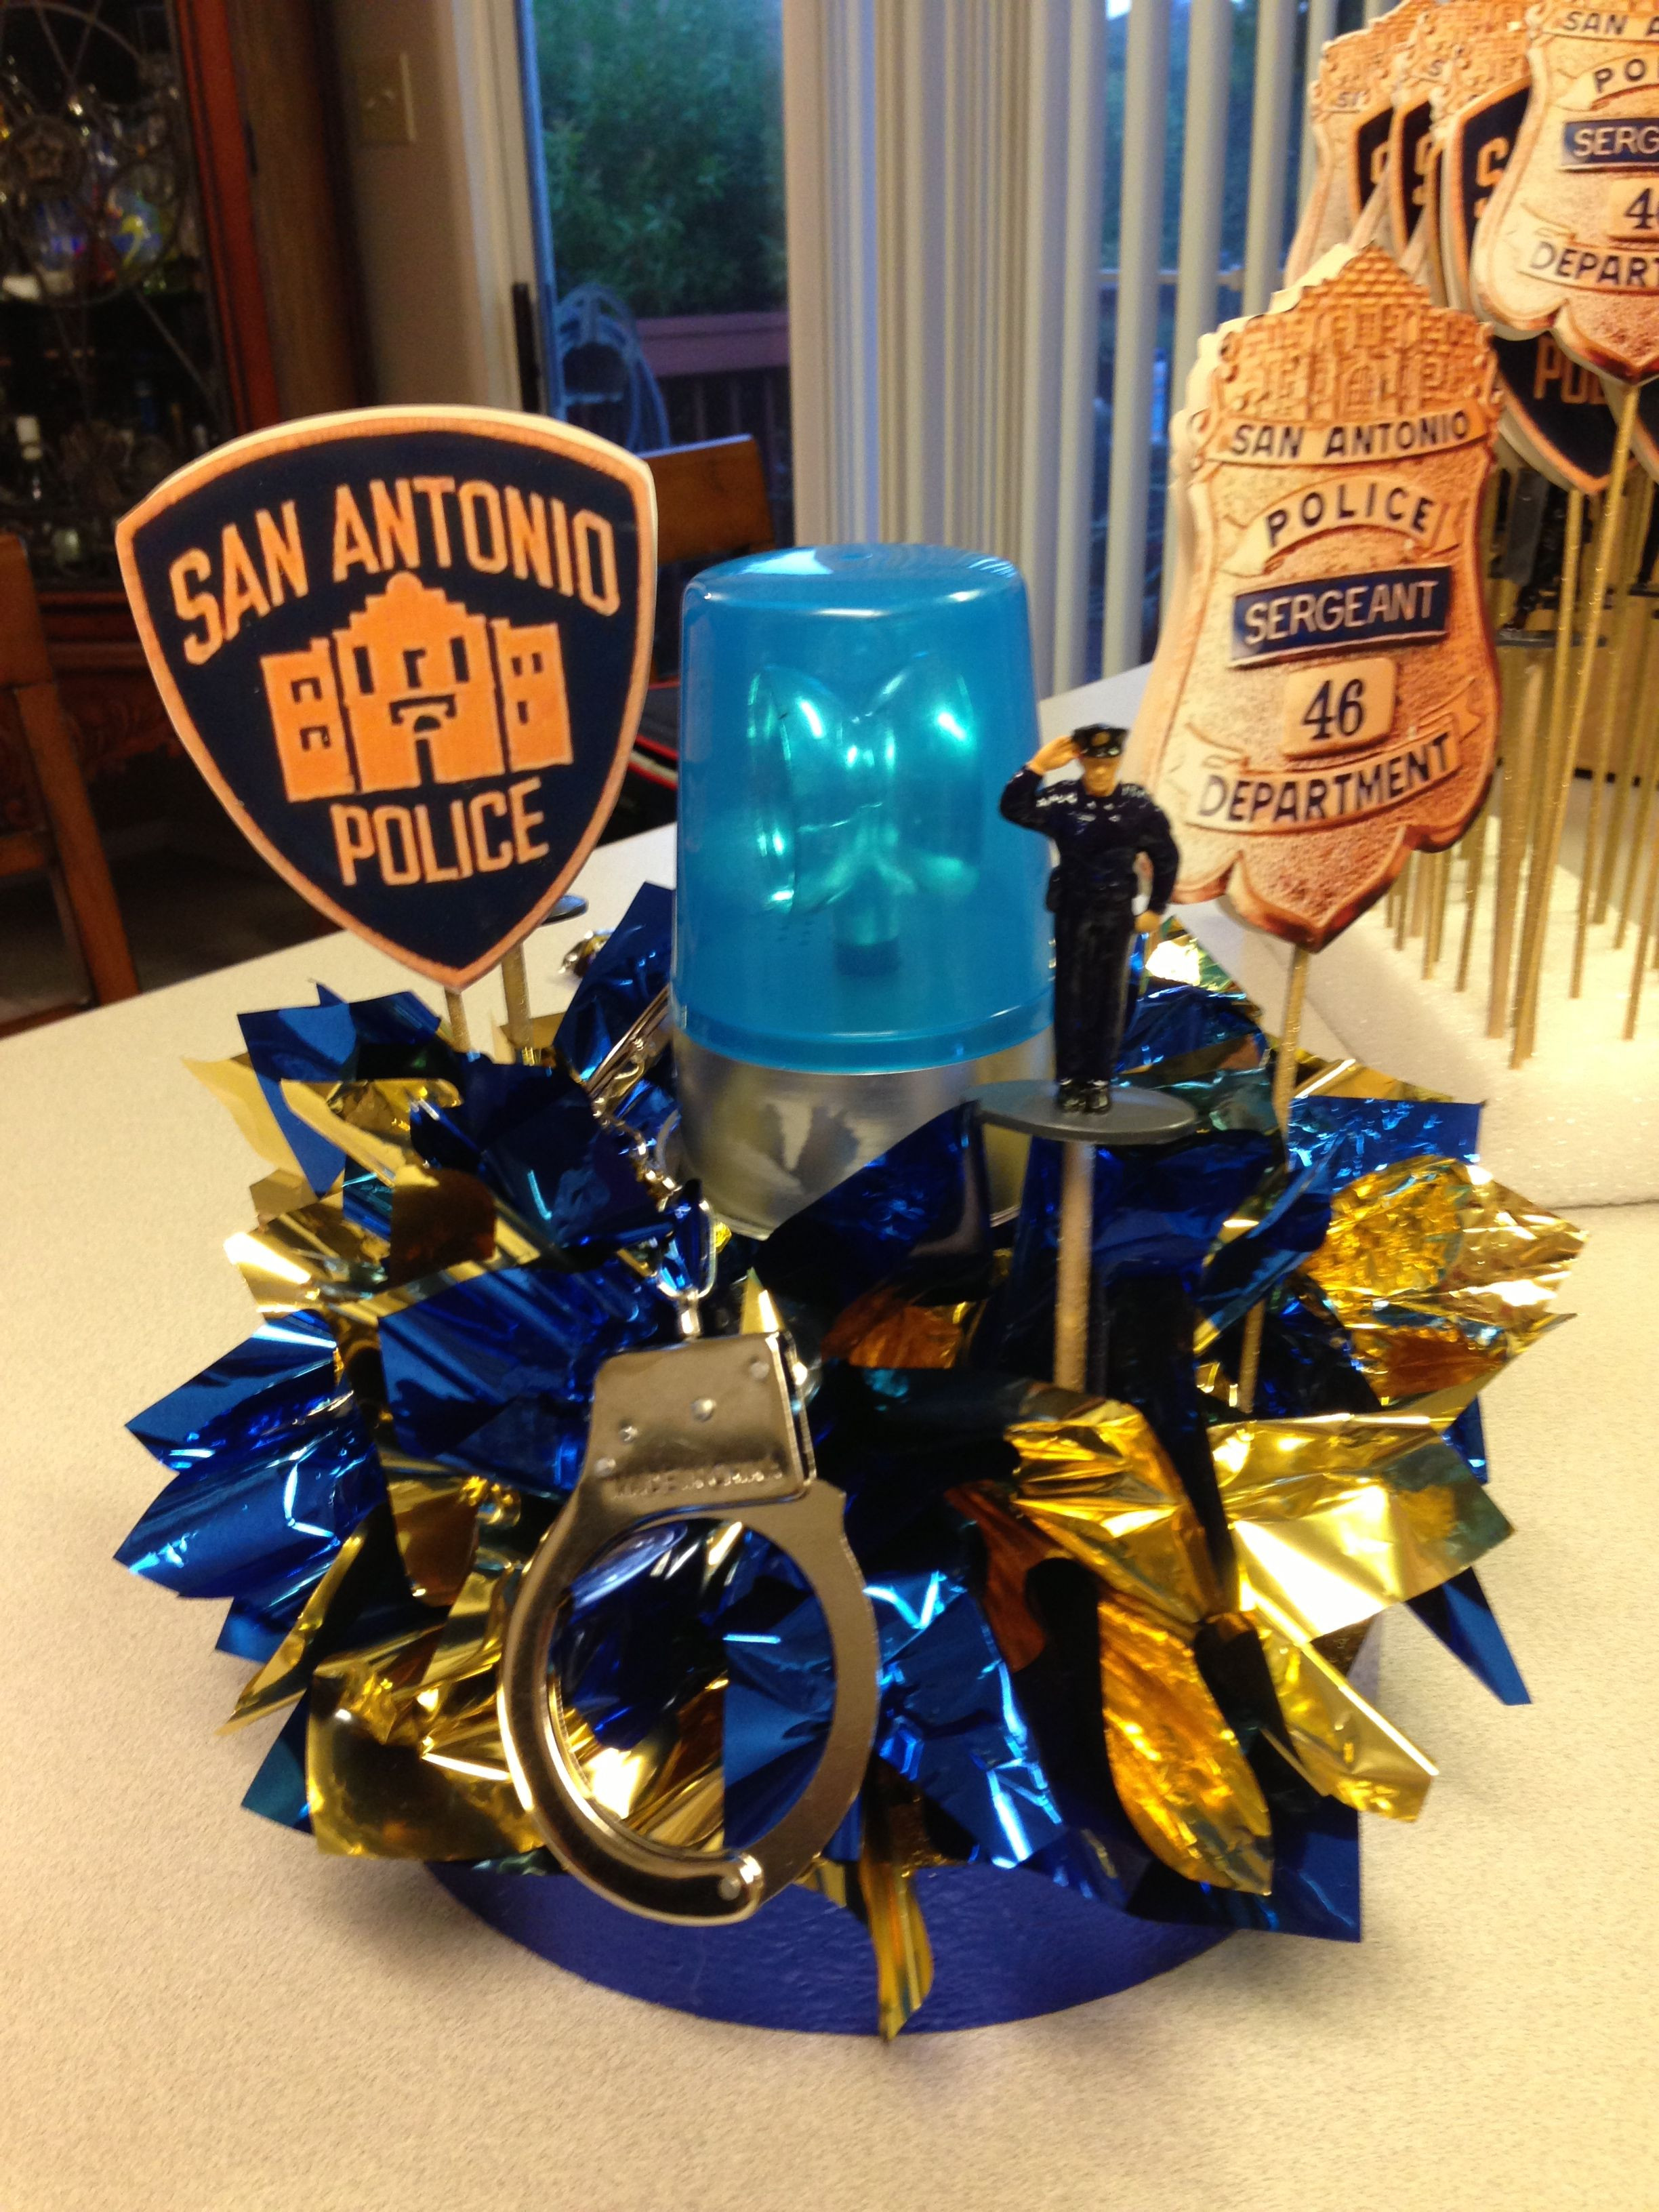 Police Officer Retirement Party Ideas  Police Party DIY centerpiece for police officer retirement